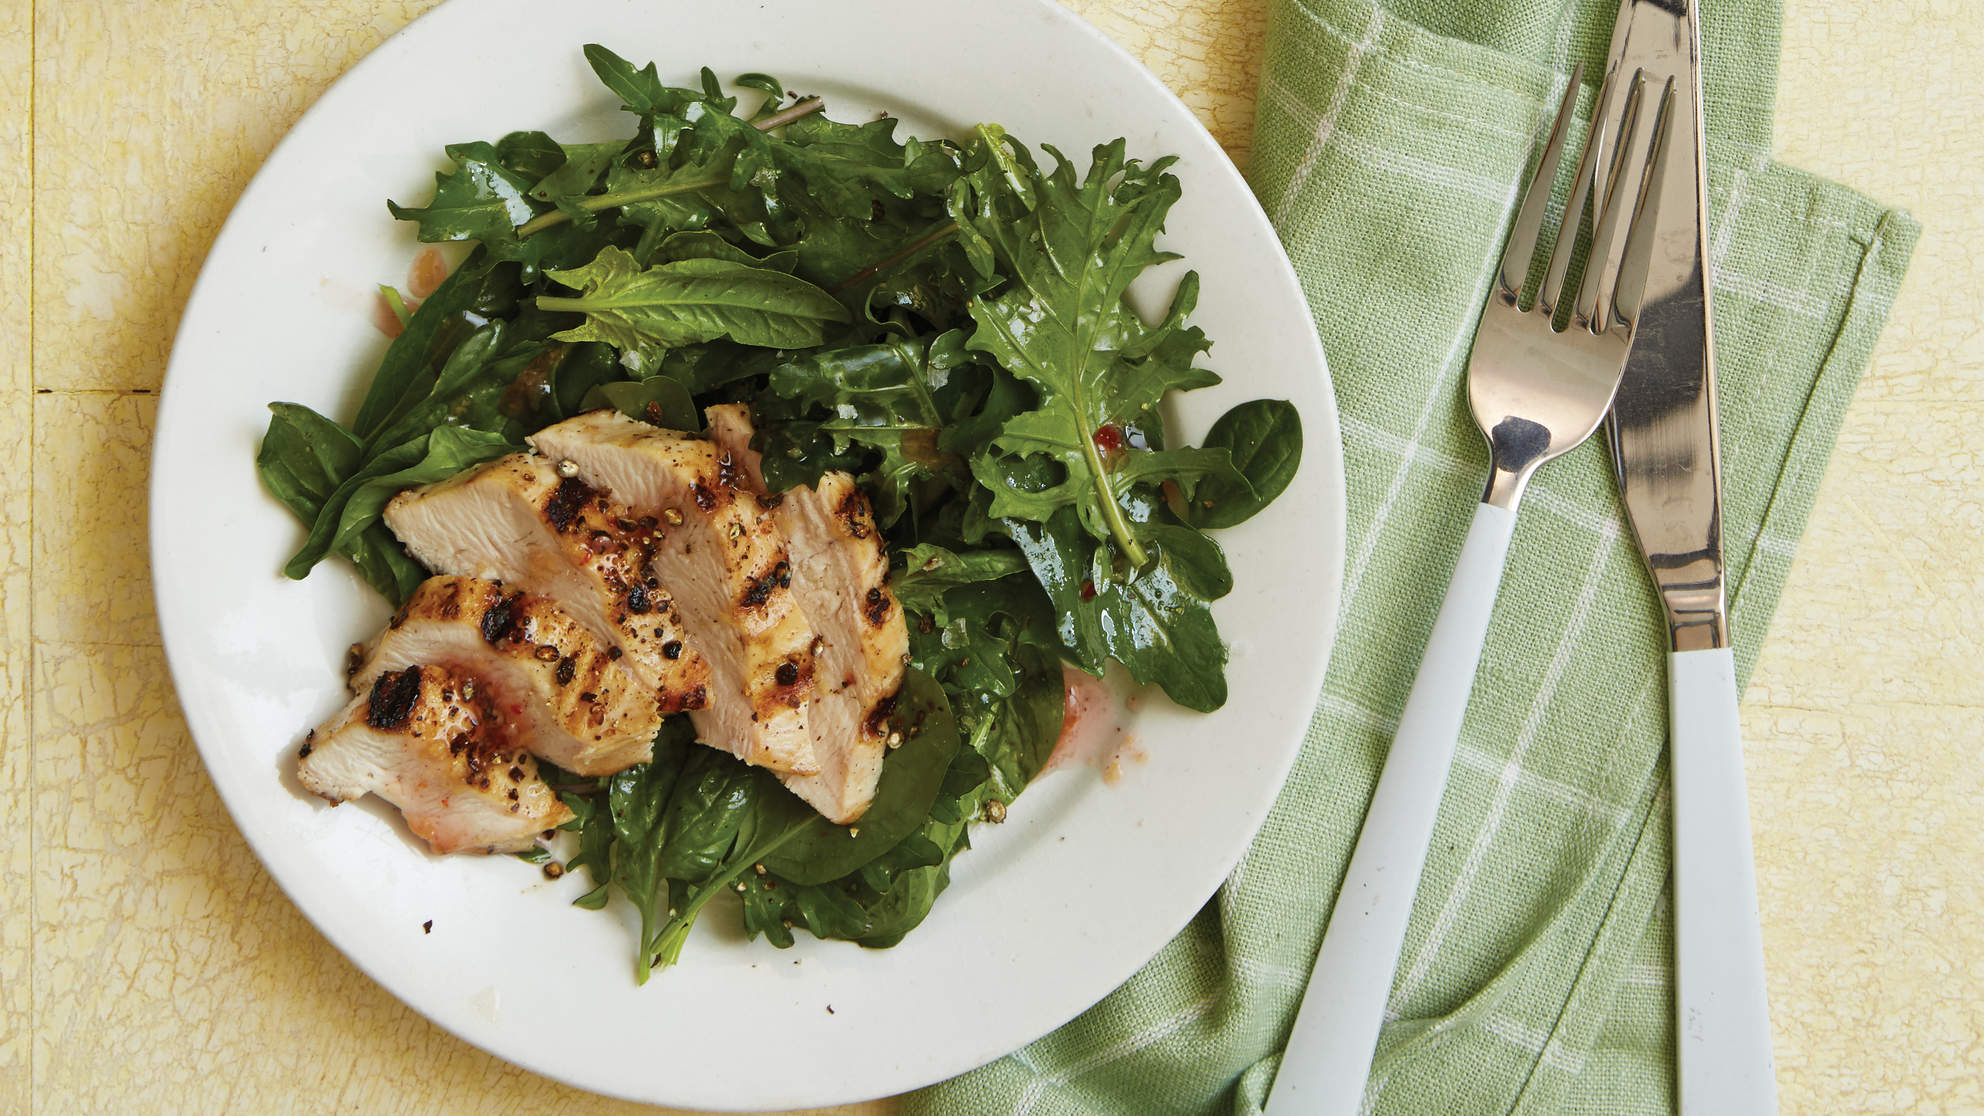 Chicken Kale Salad with Fresh Ginger Dressing